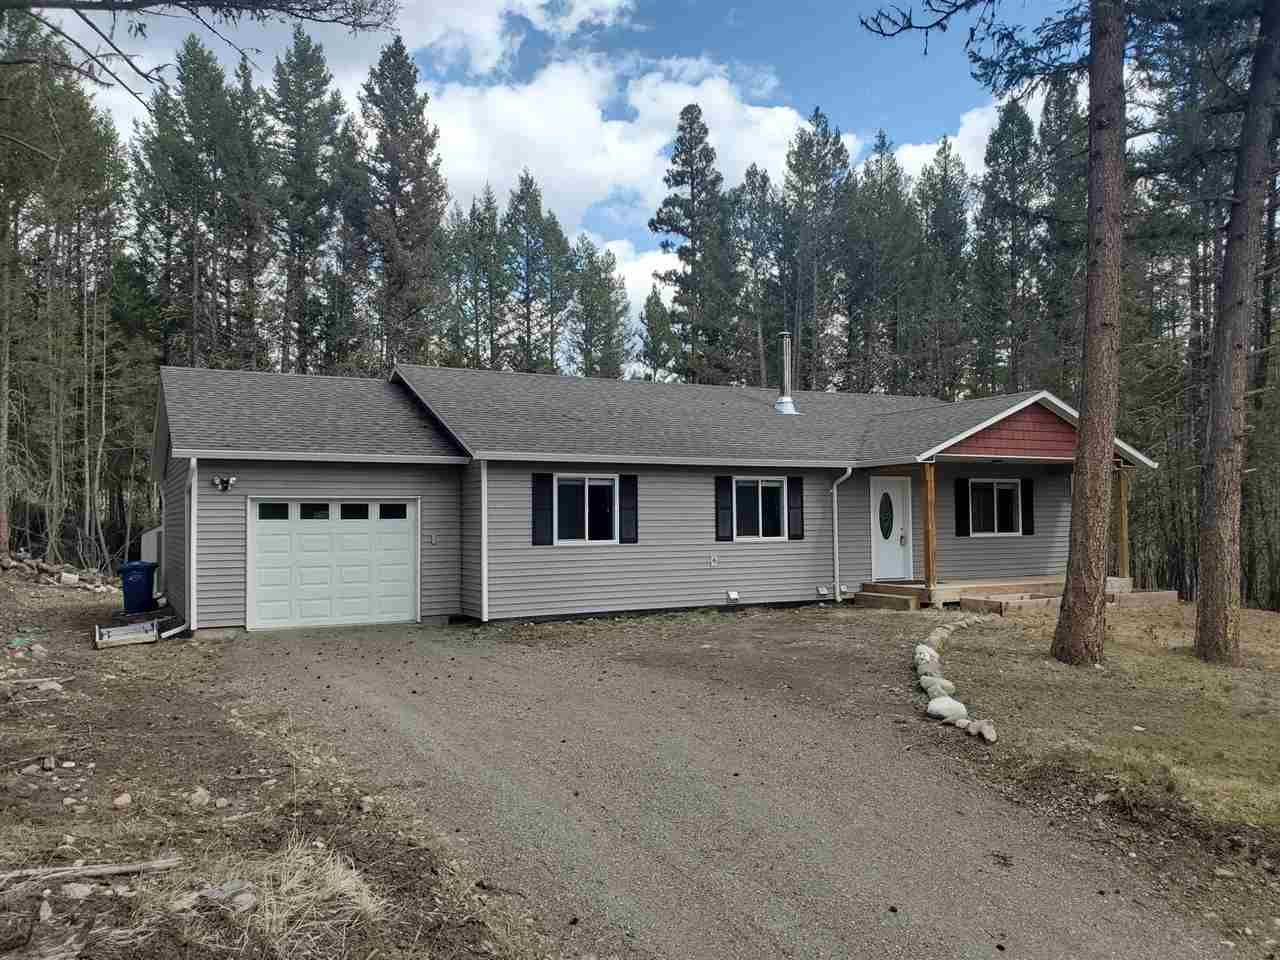 Main Photo: 4887 GLOINNZUN Crescent in 108 Mile Ranch: 108 Ranch House for sale (100 Mile House (Zone 10))  : MLS®# R2441318